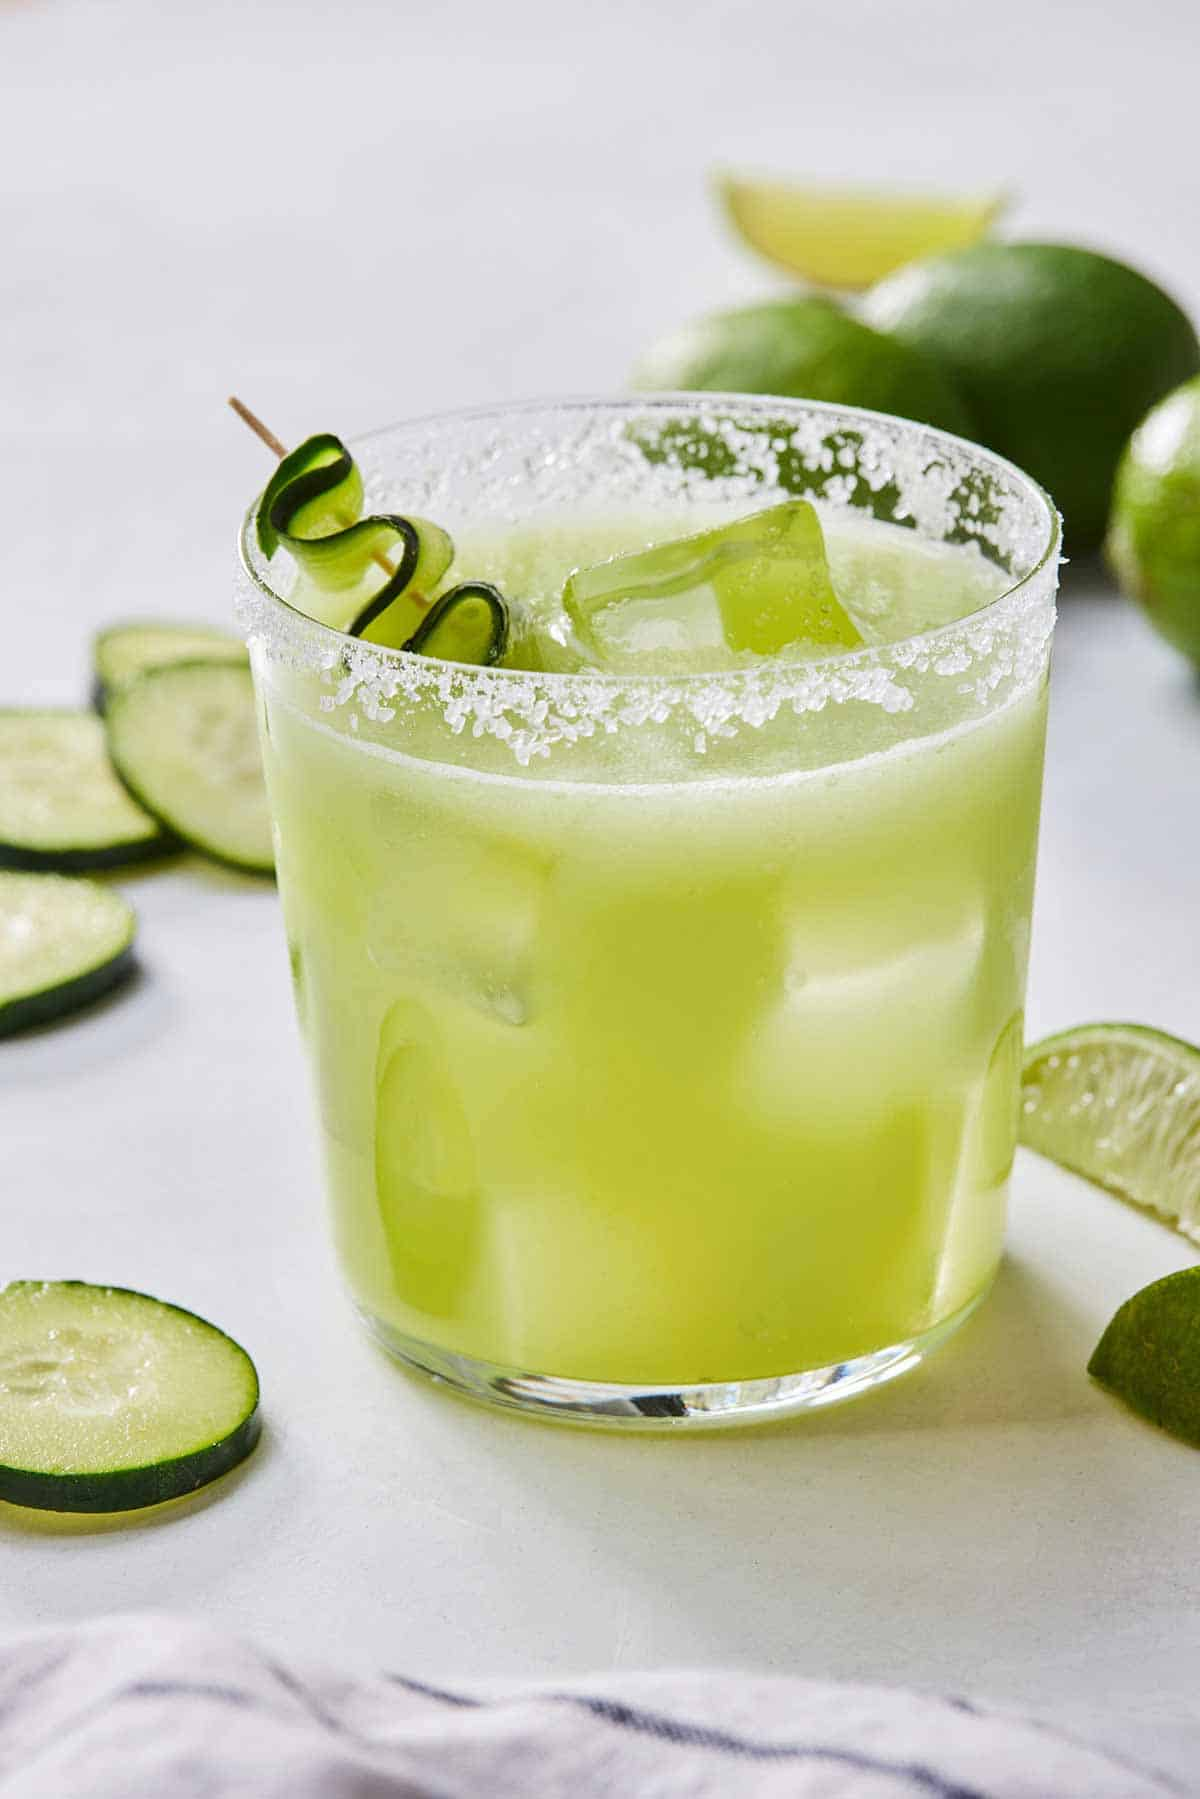 A glass of cucumber margarita with a salted rim and cucumbers slices around.